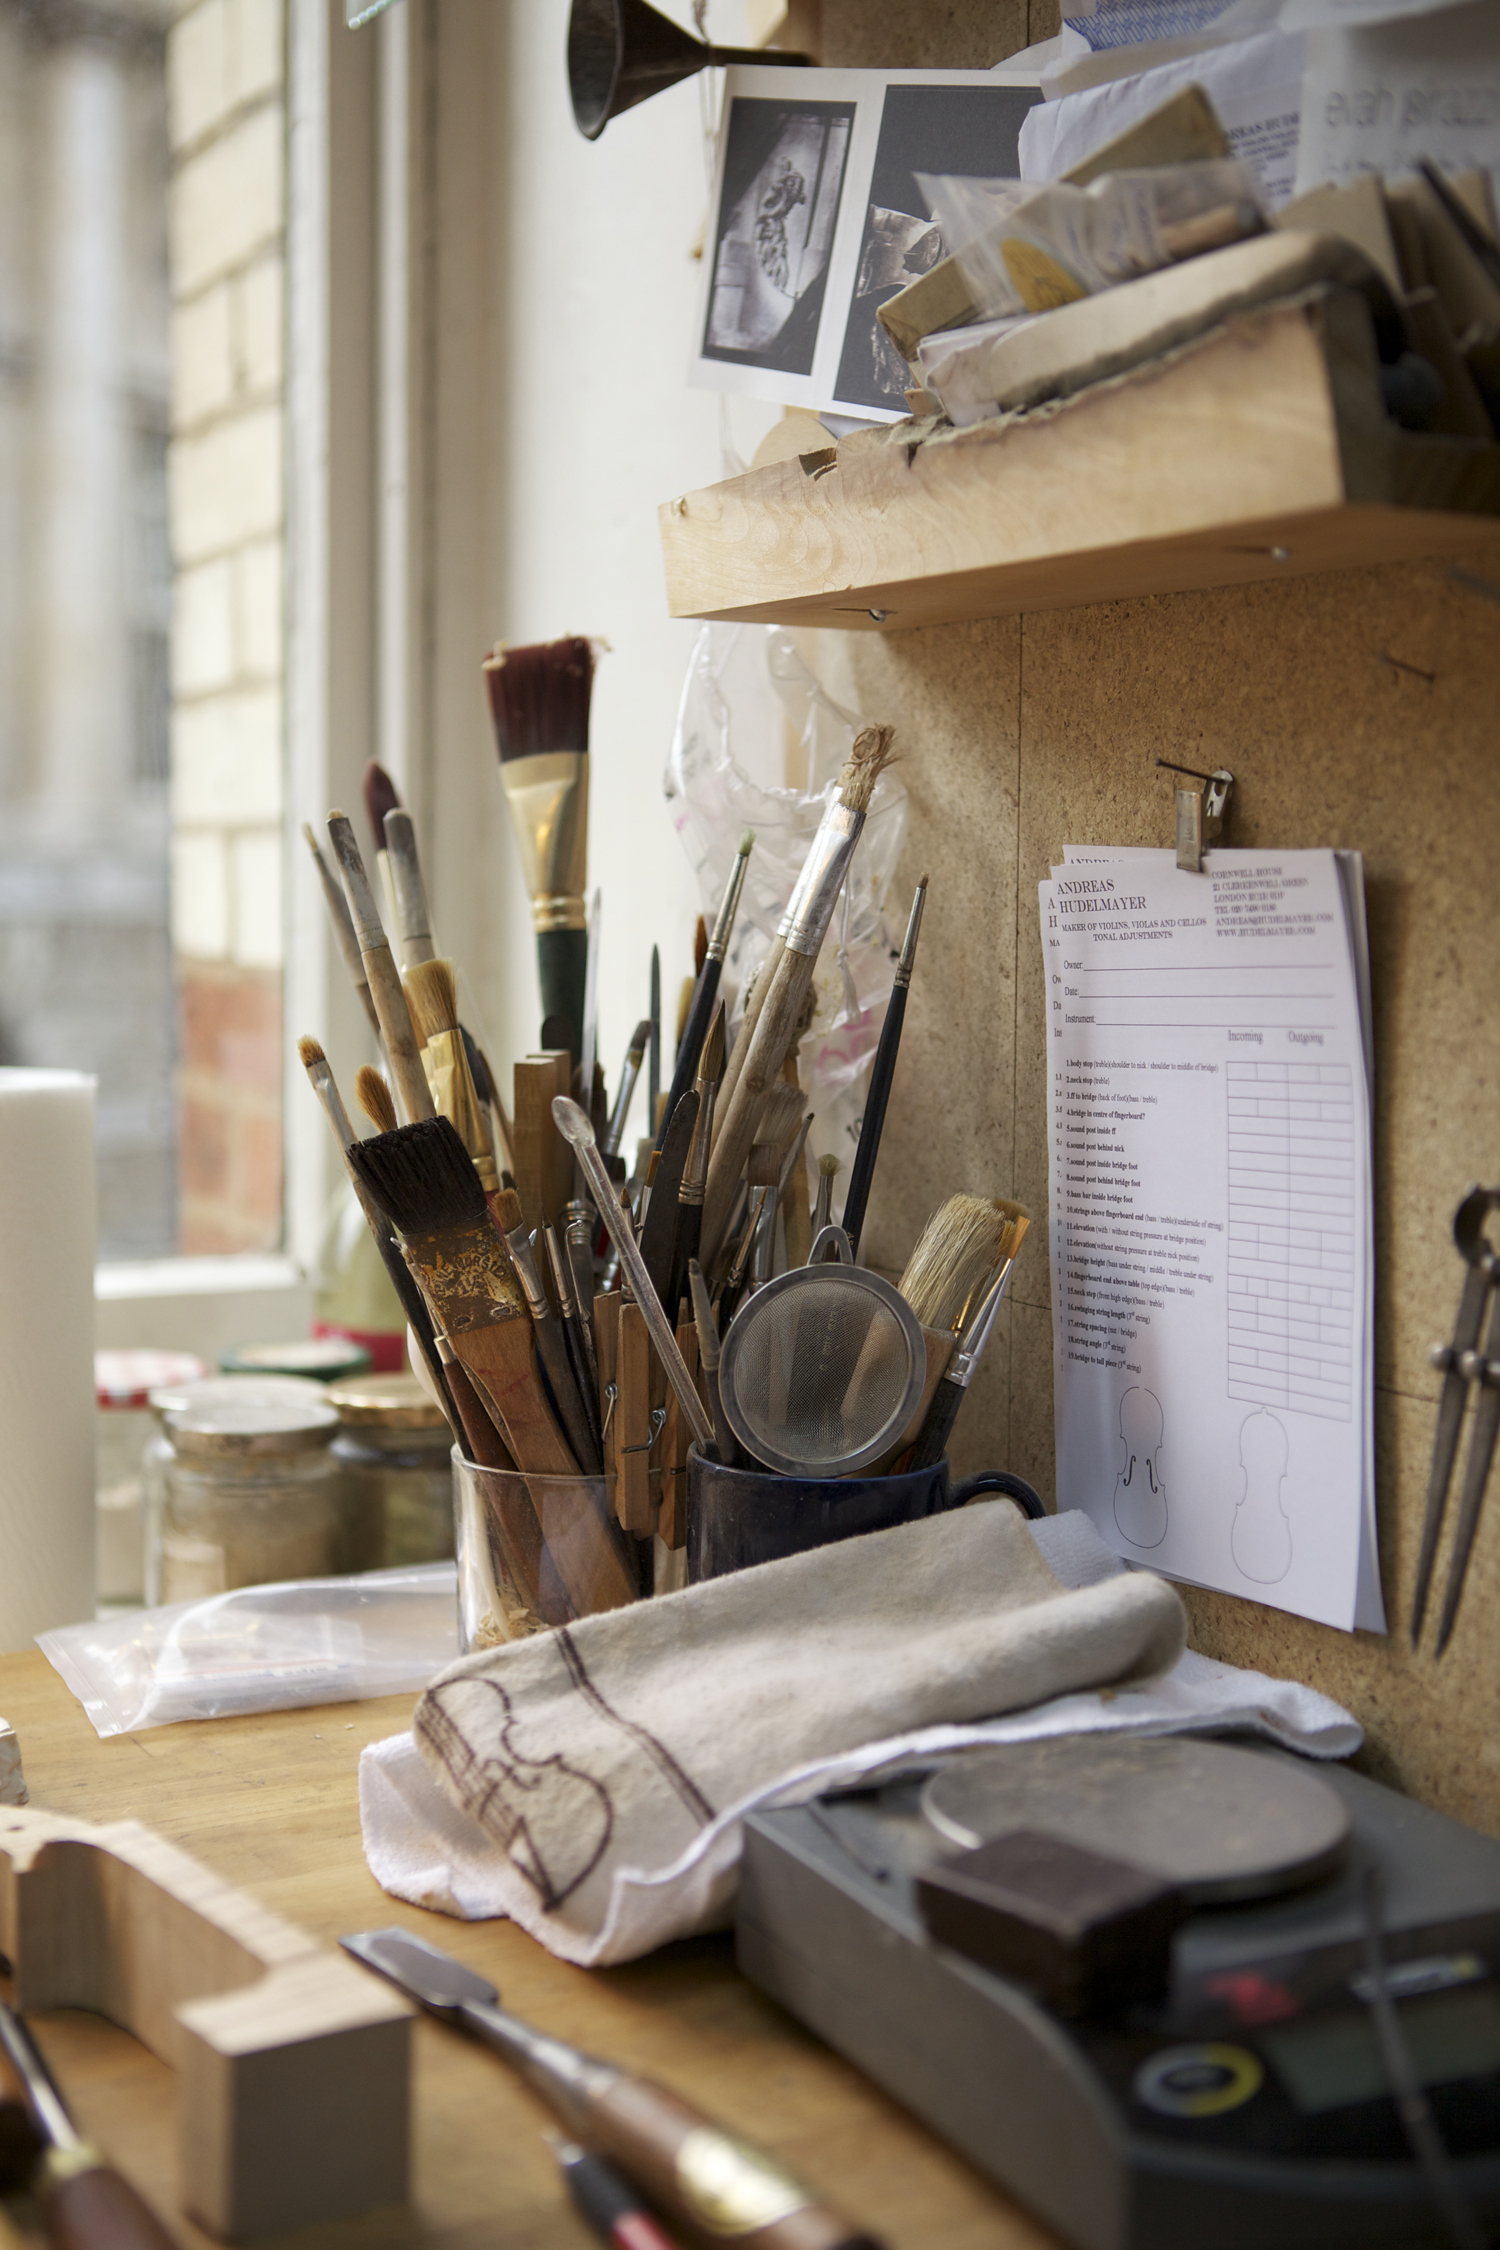 made by hand, hand makers and crafts people photographed in their workshops and studios. Tools, hands, processes and environmental portraits. Black Dog Publishing, Root and Bone Magazine